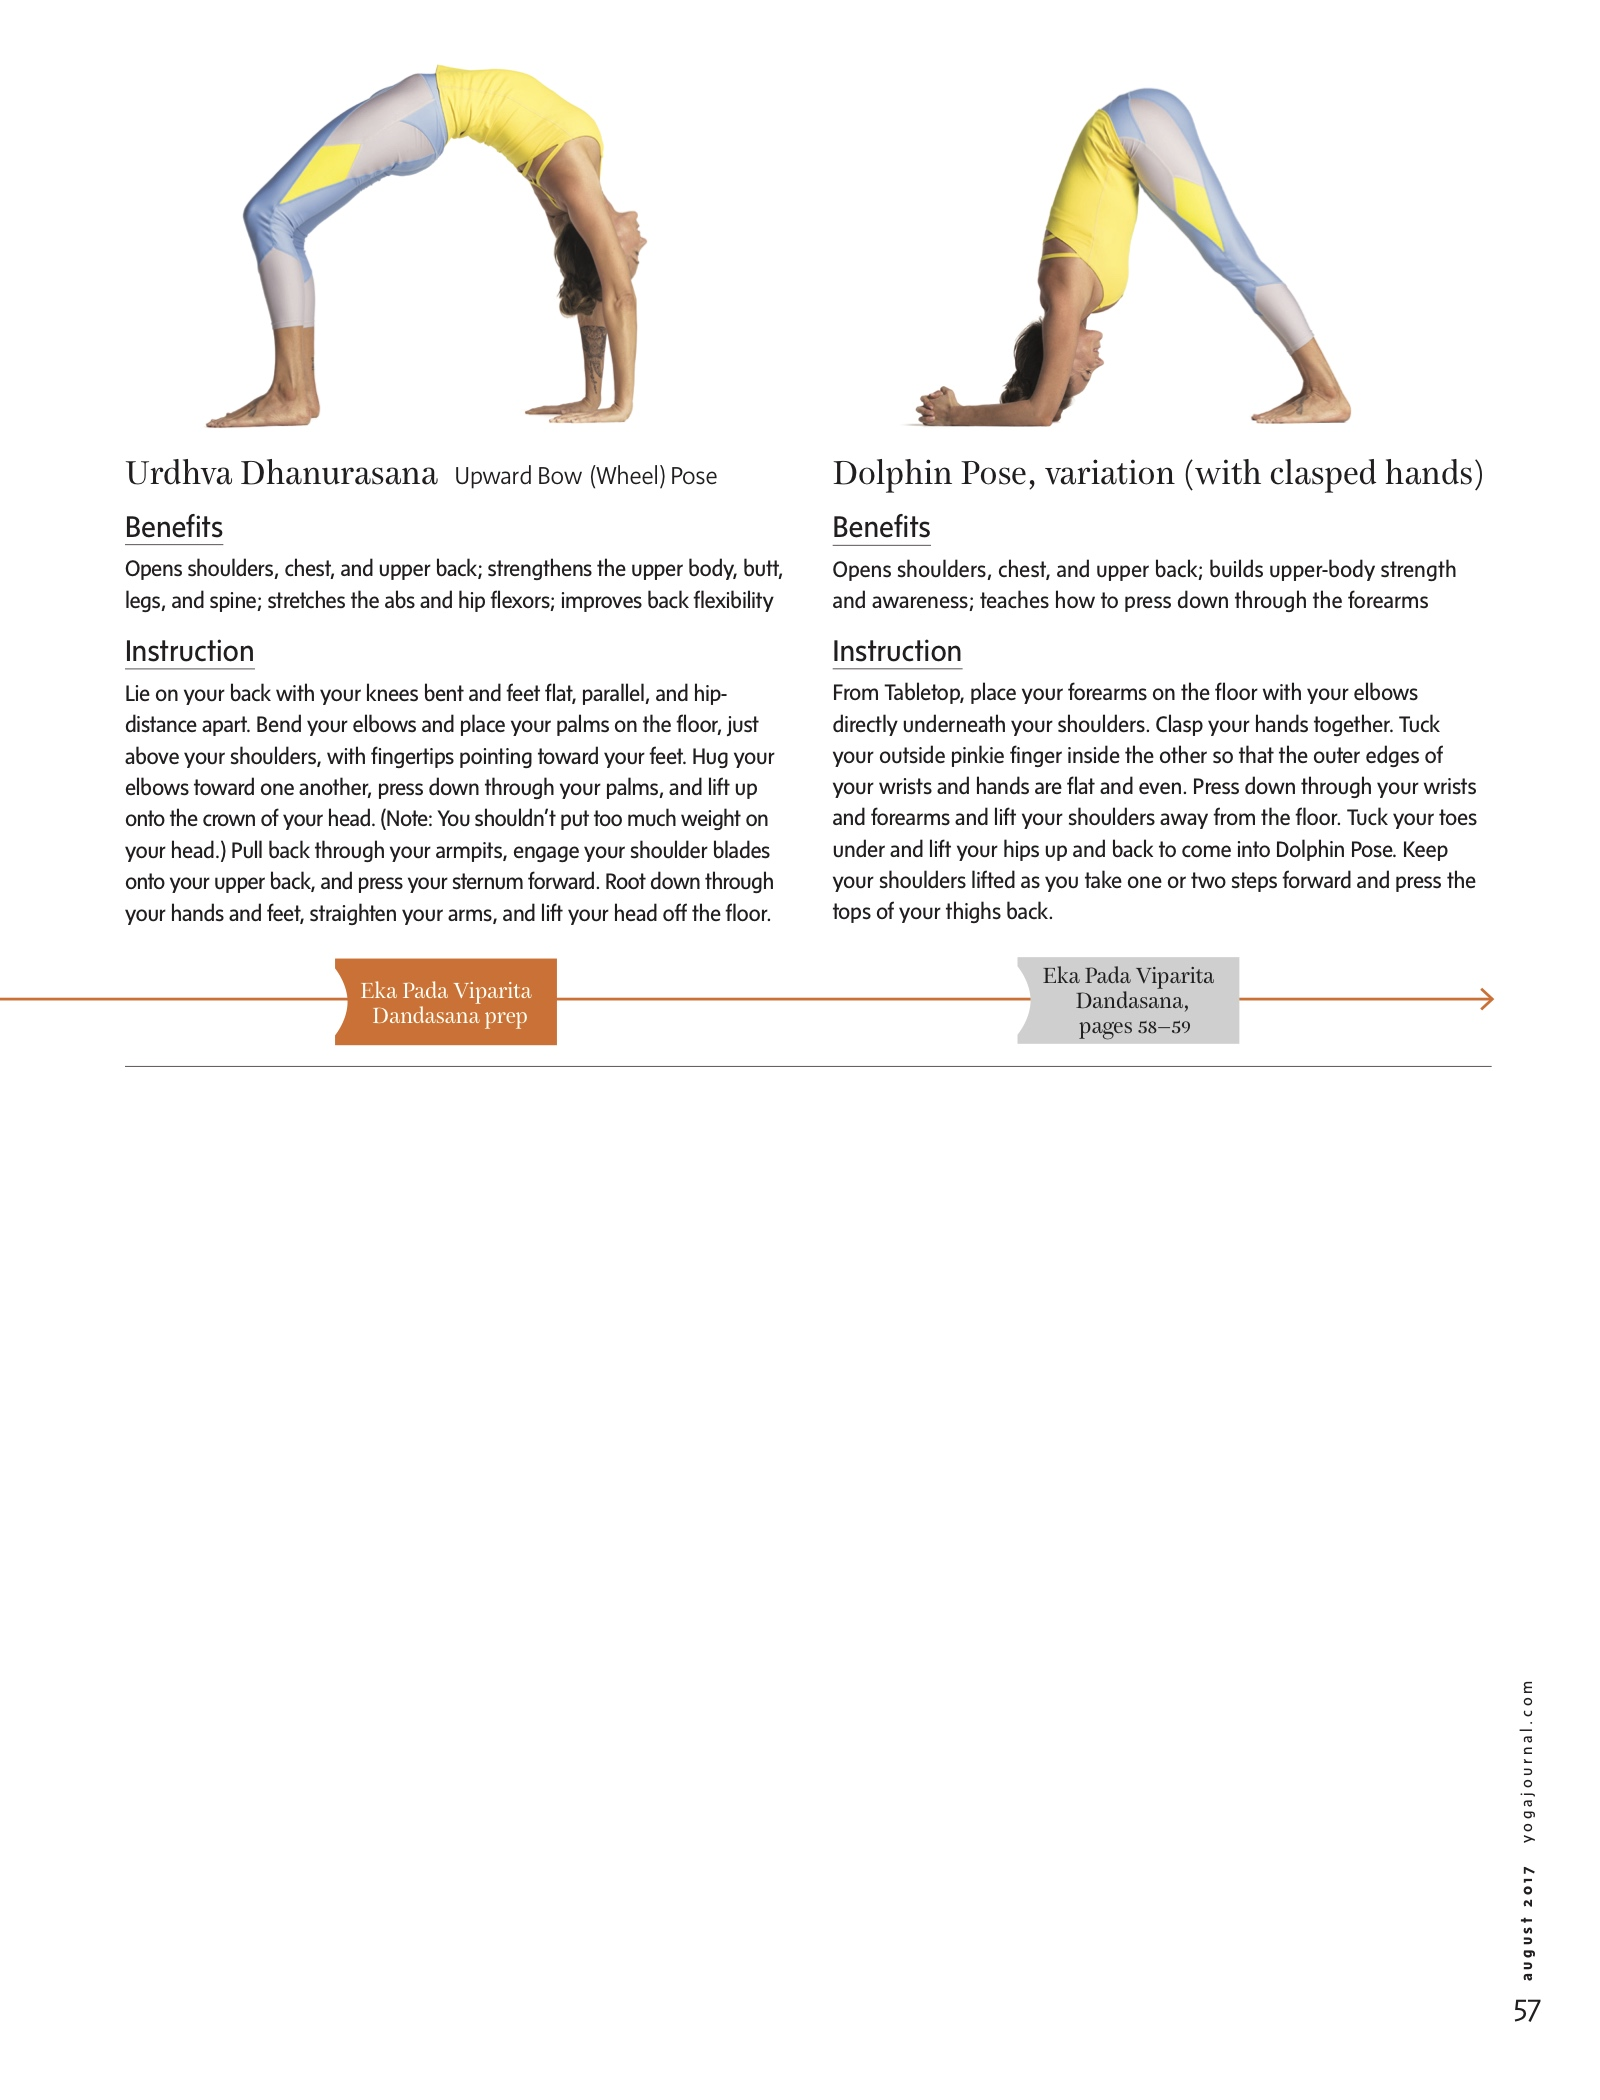 Yogapedia_291 copy.jpg